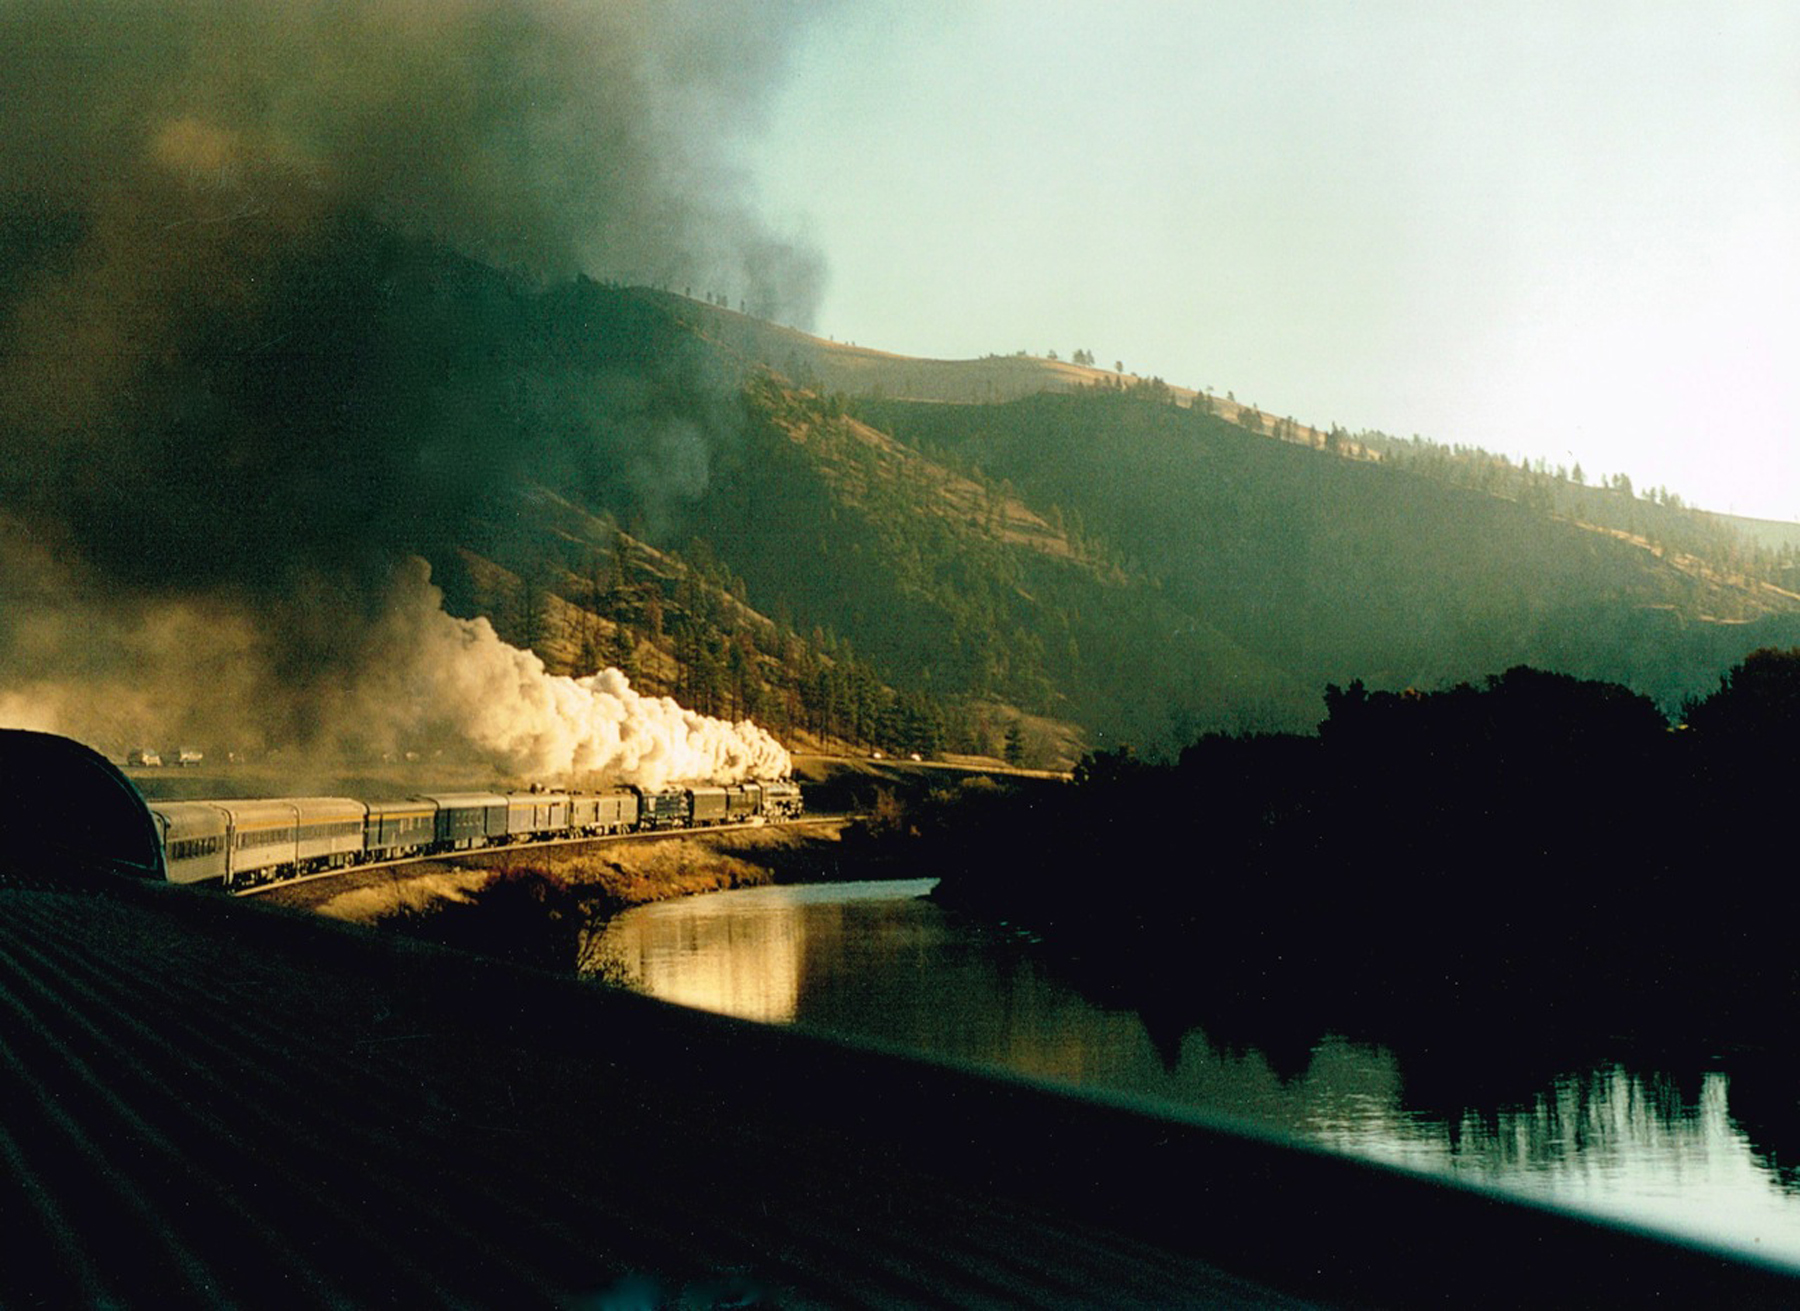 Train west of Drummond: The fully restored Spokane, Portland and Seattle Ry #700 travels west of Drummond in October 2002. (Photo by Jack Dykstra)